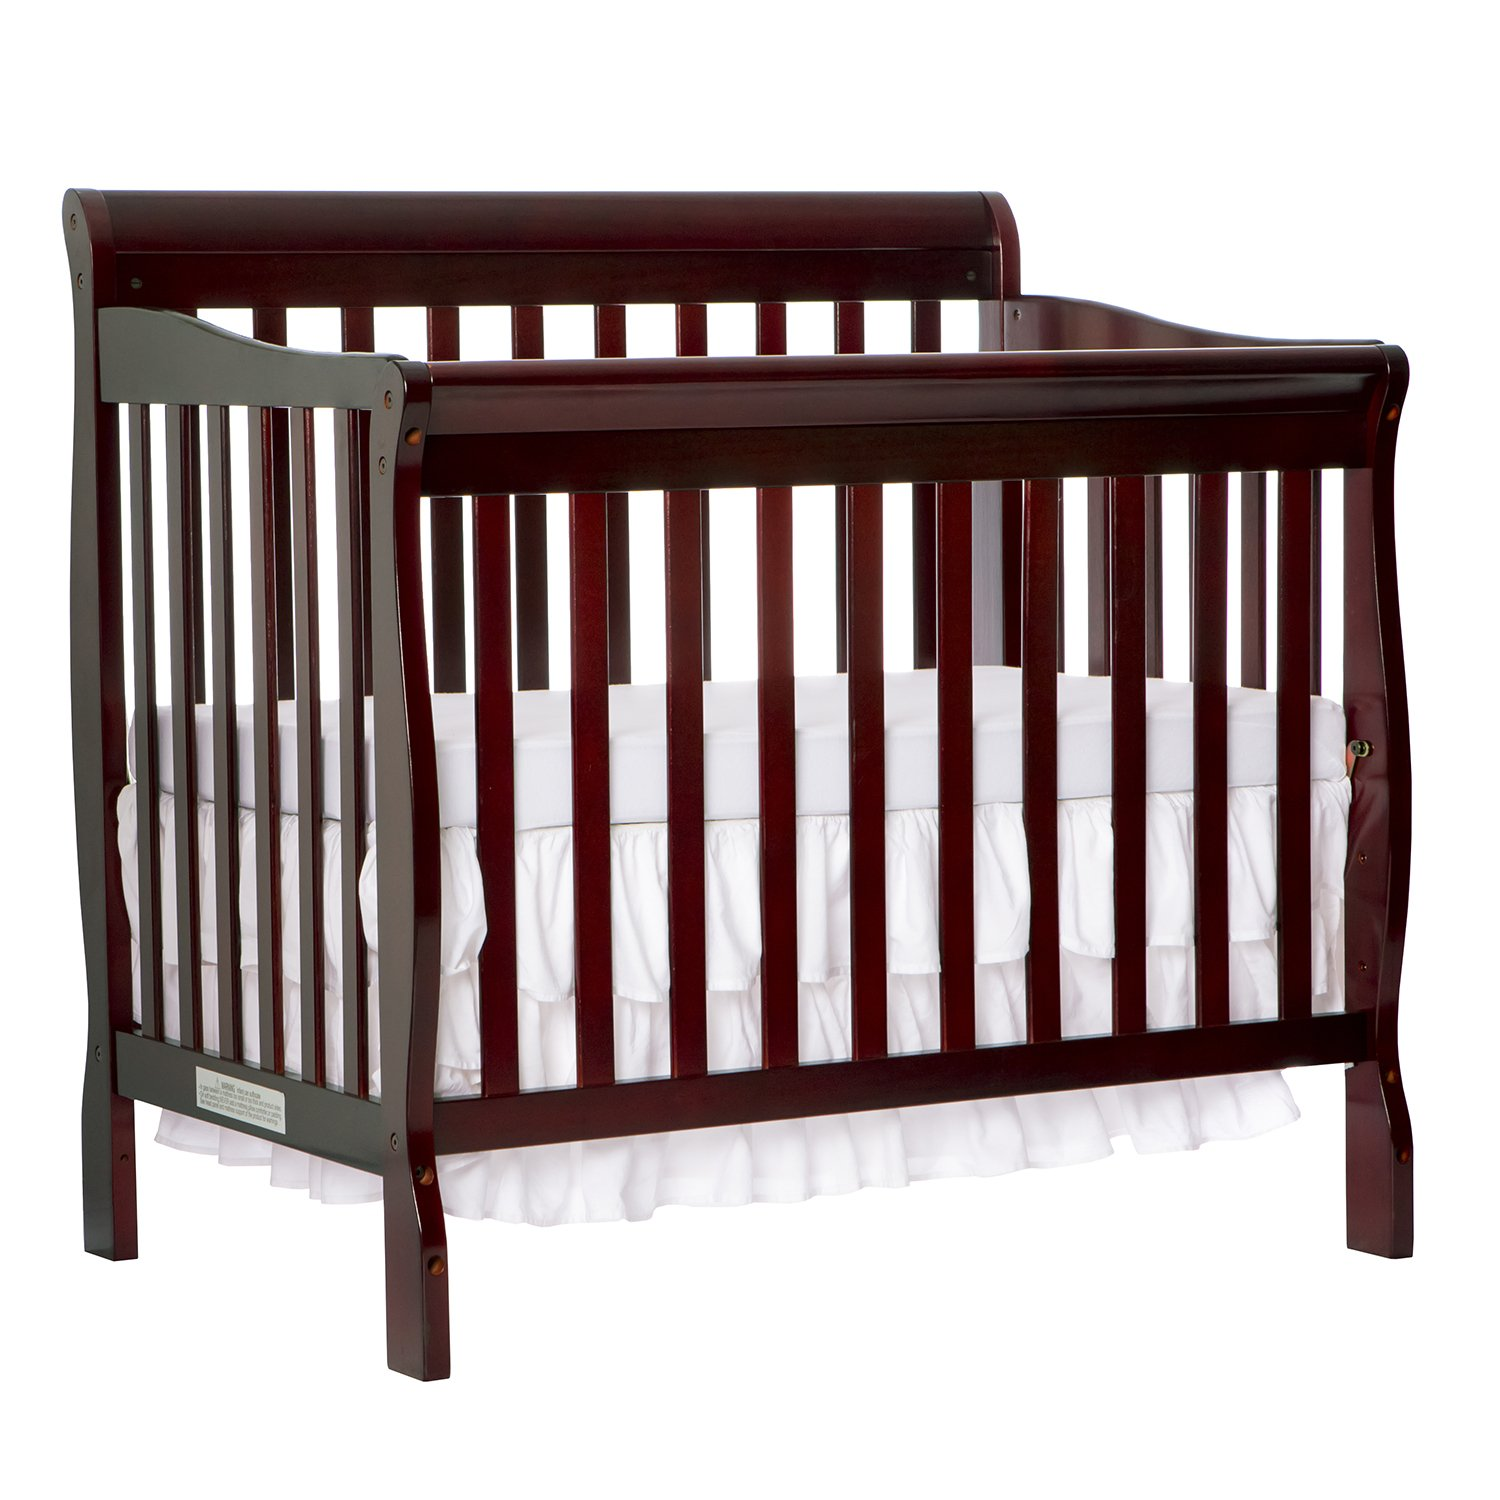 cheap complete view online round best the crib on sale for guide to buying larger baby new l cribs